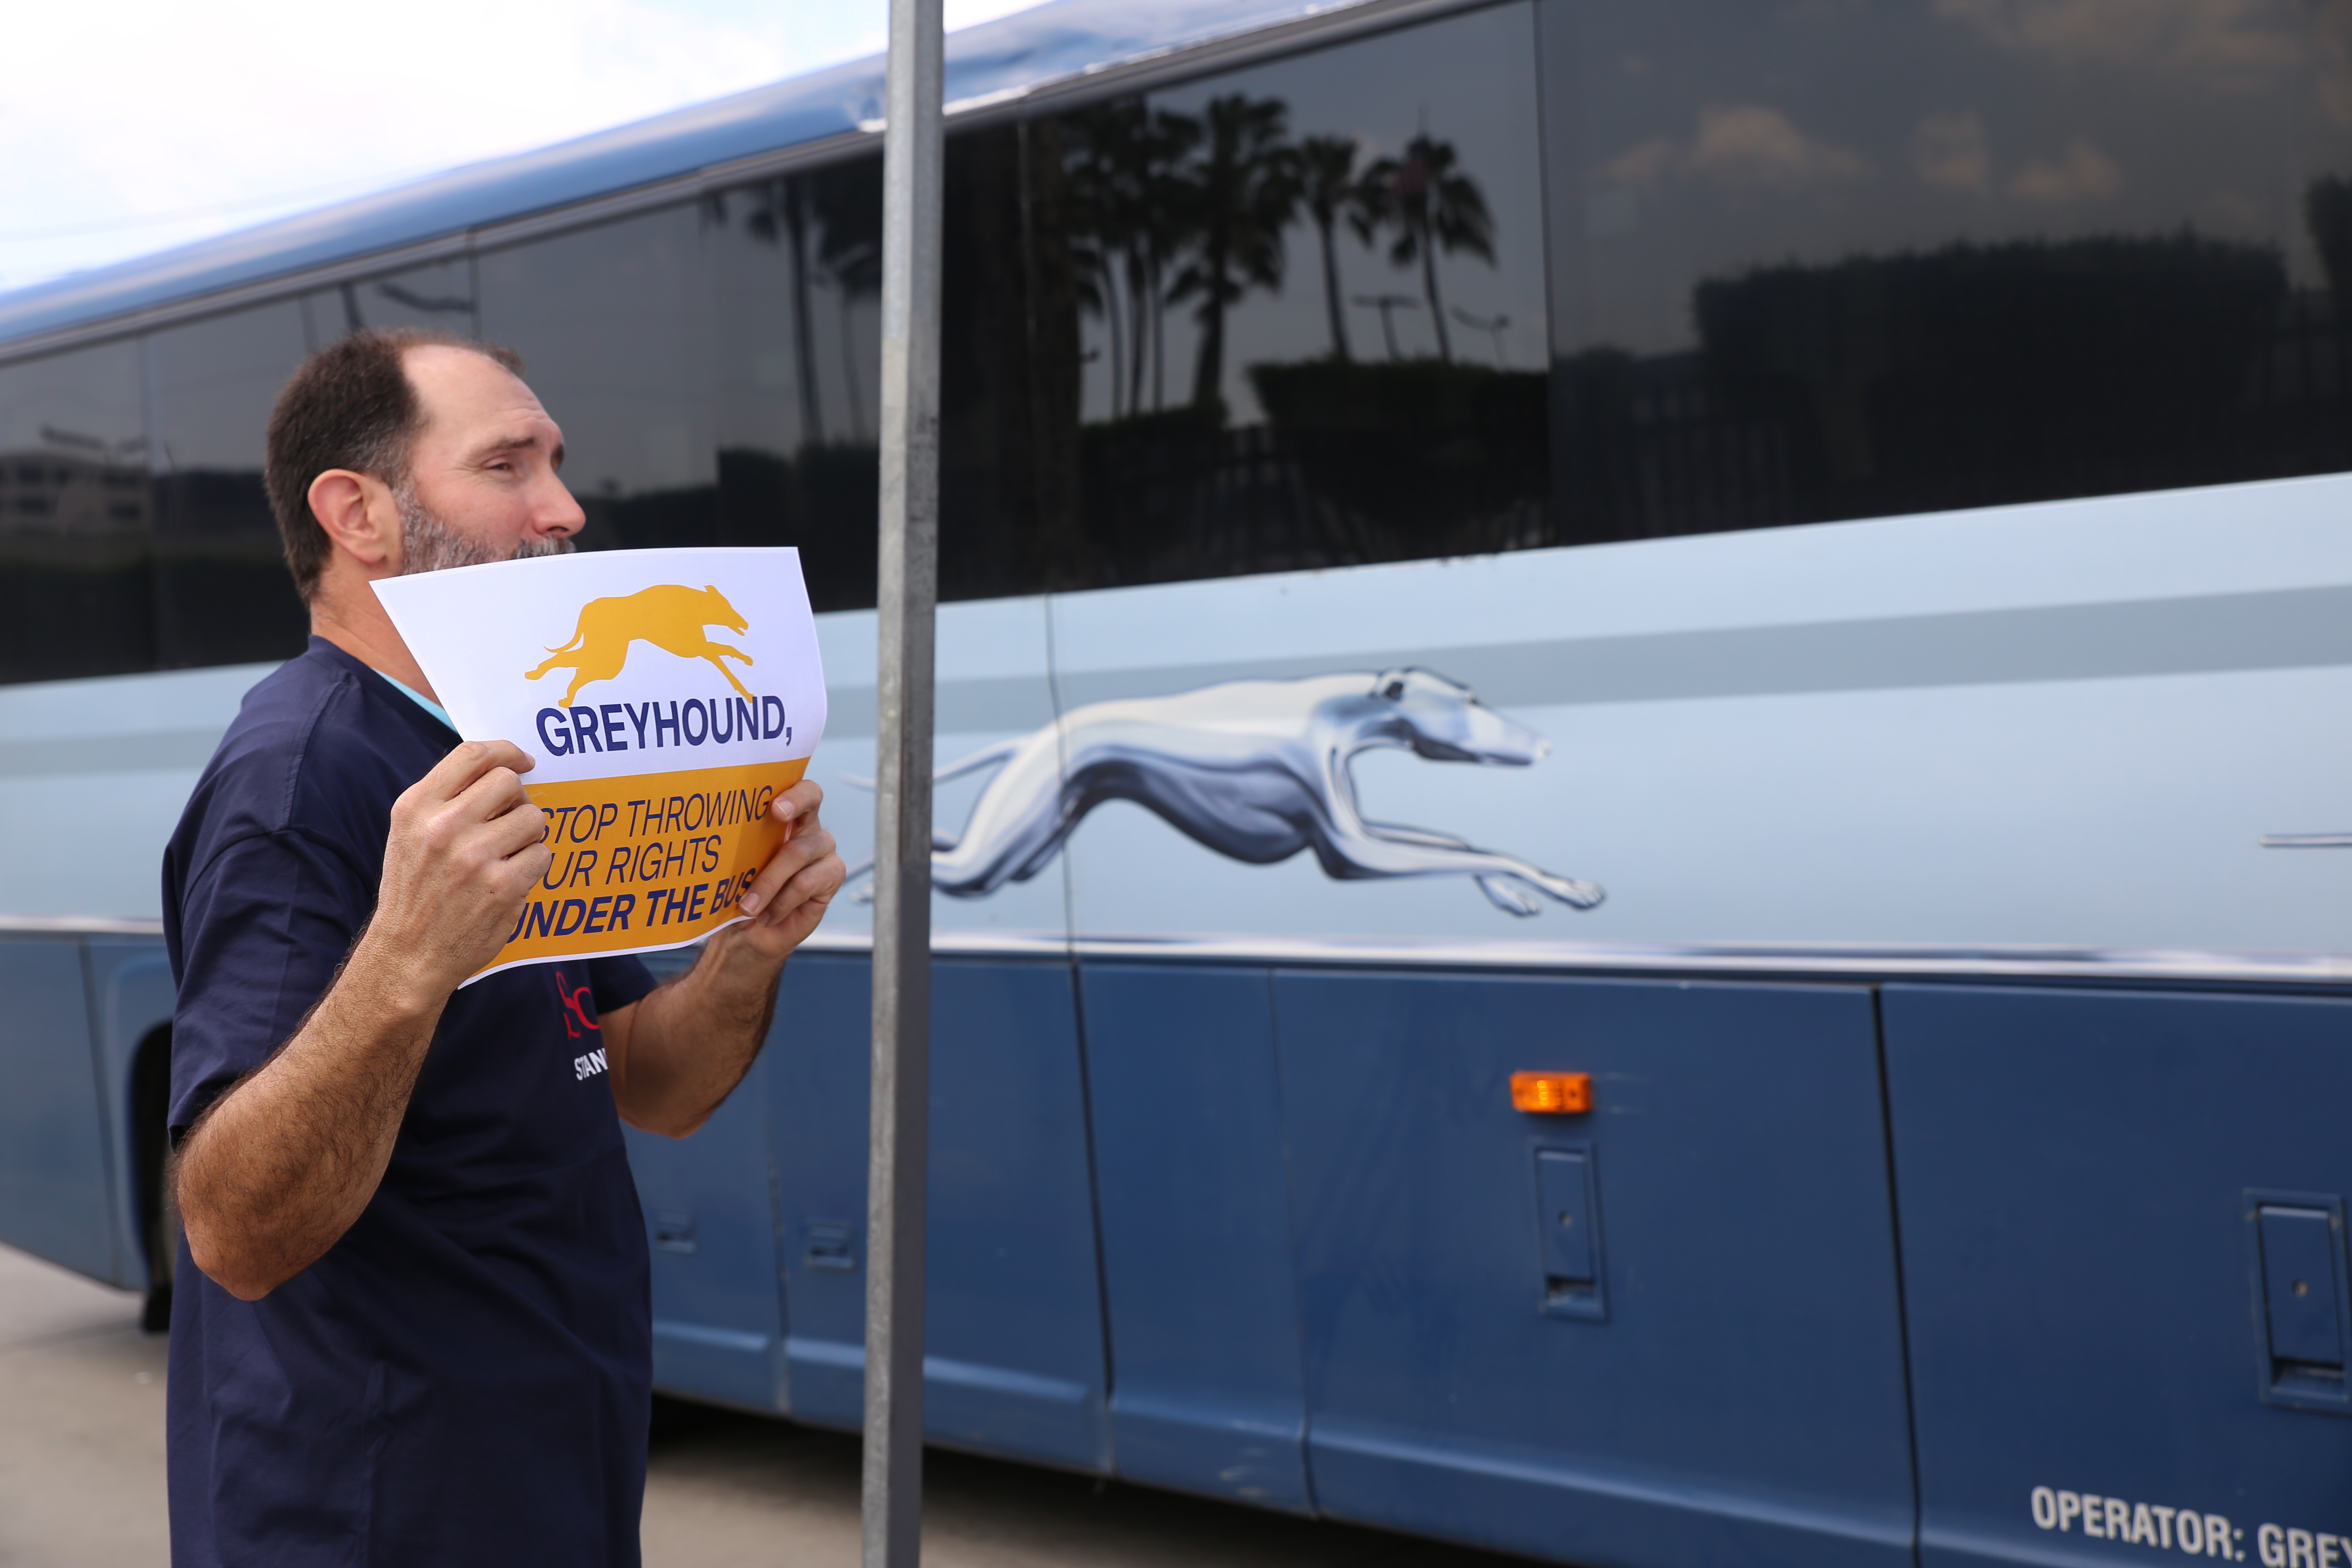 """A man on the sidewalk holding a sign that reads """"Greyhound, stop throwing our rights under the bus"""" as a Greyhound bus passes by."""